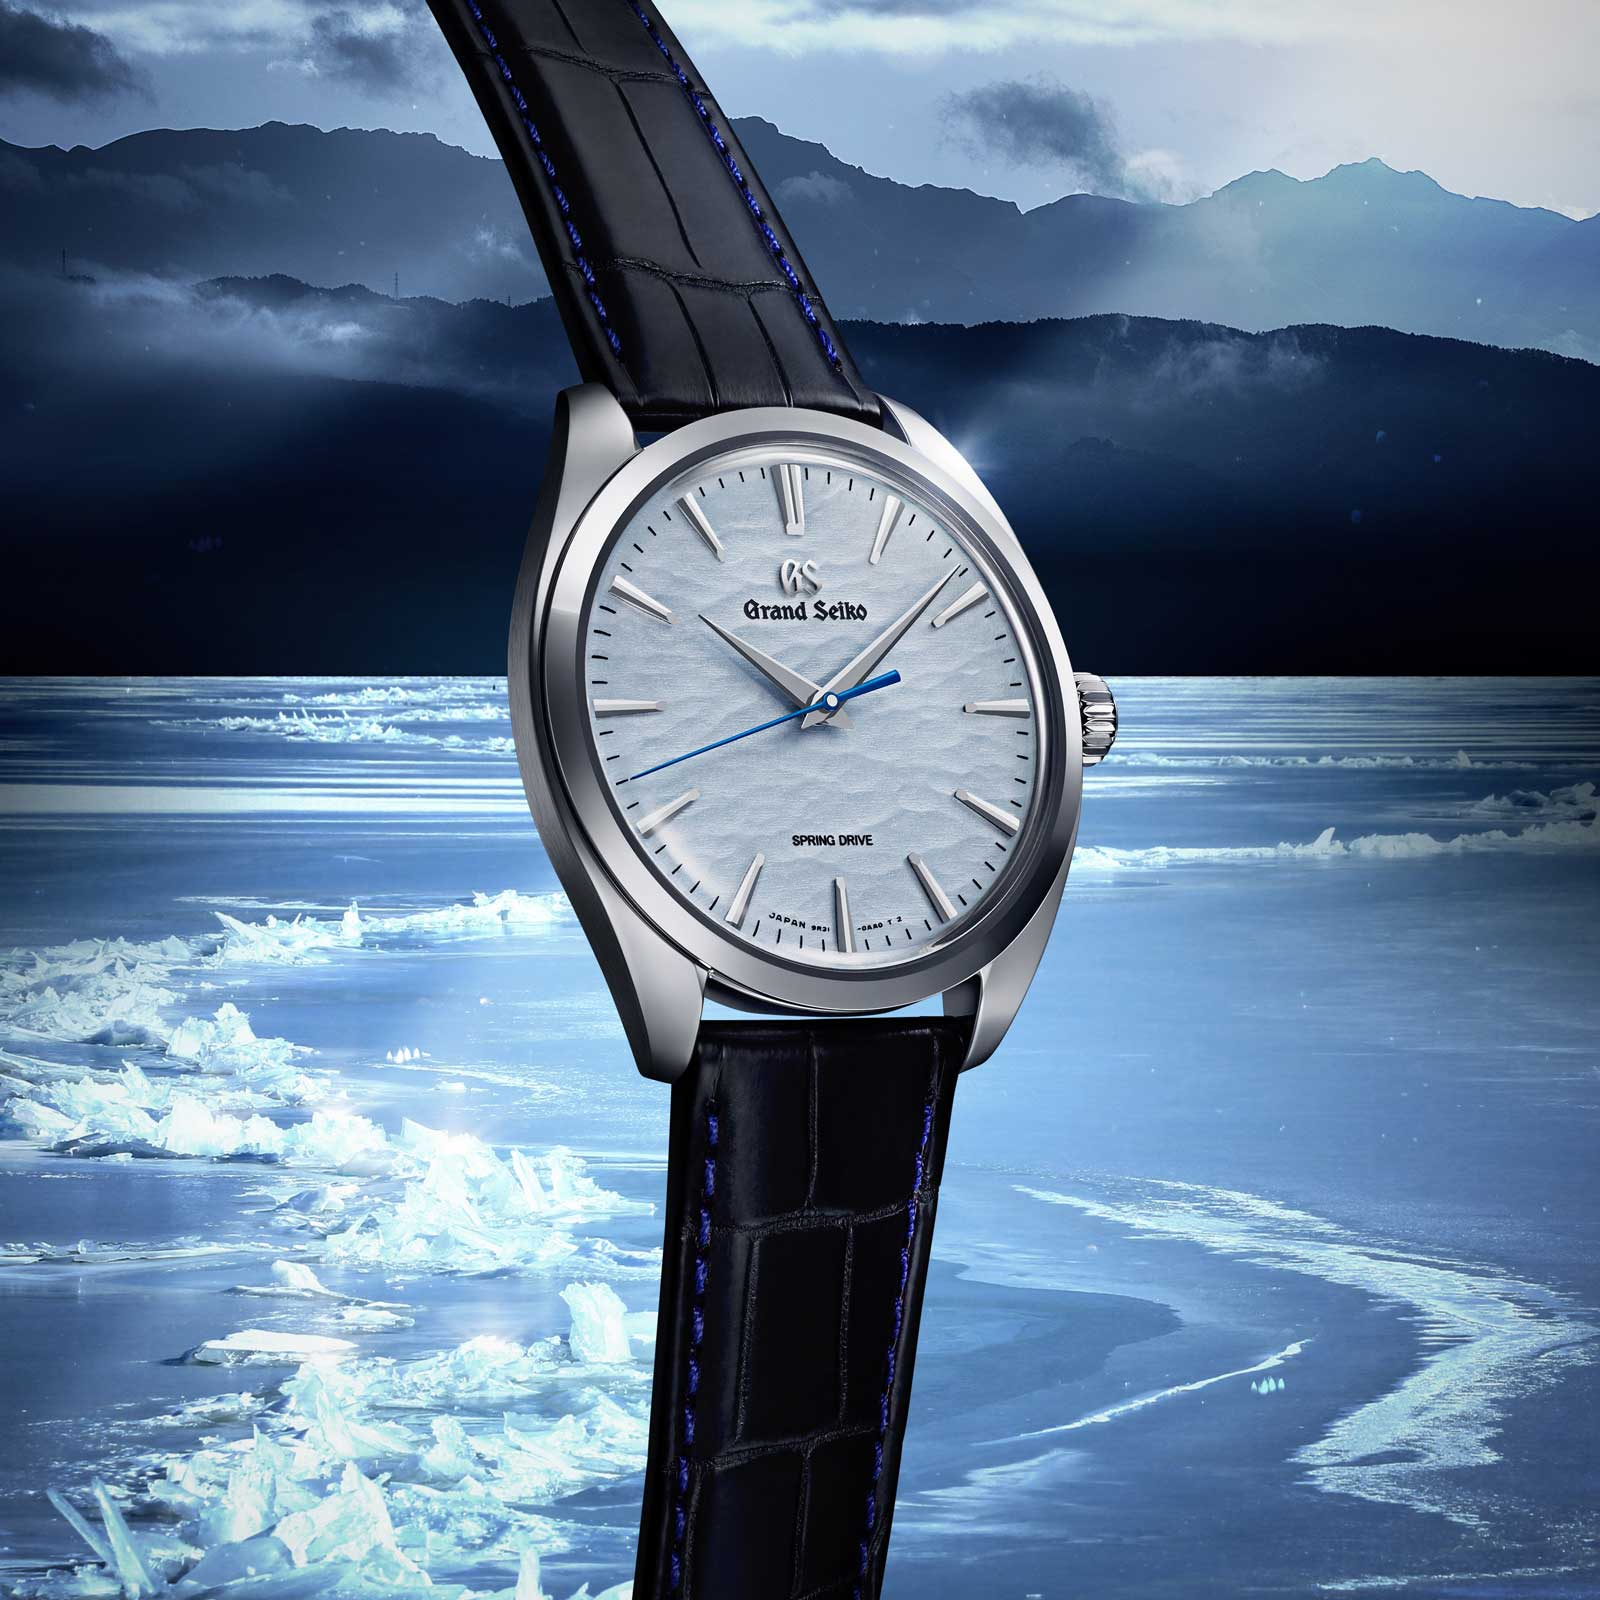 Grand Seiko SBGY007 - blue dial wristwatch in a stainless steel case against frozen lake background.